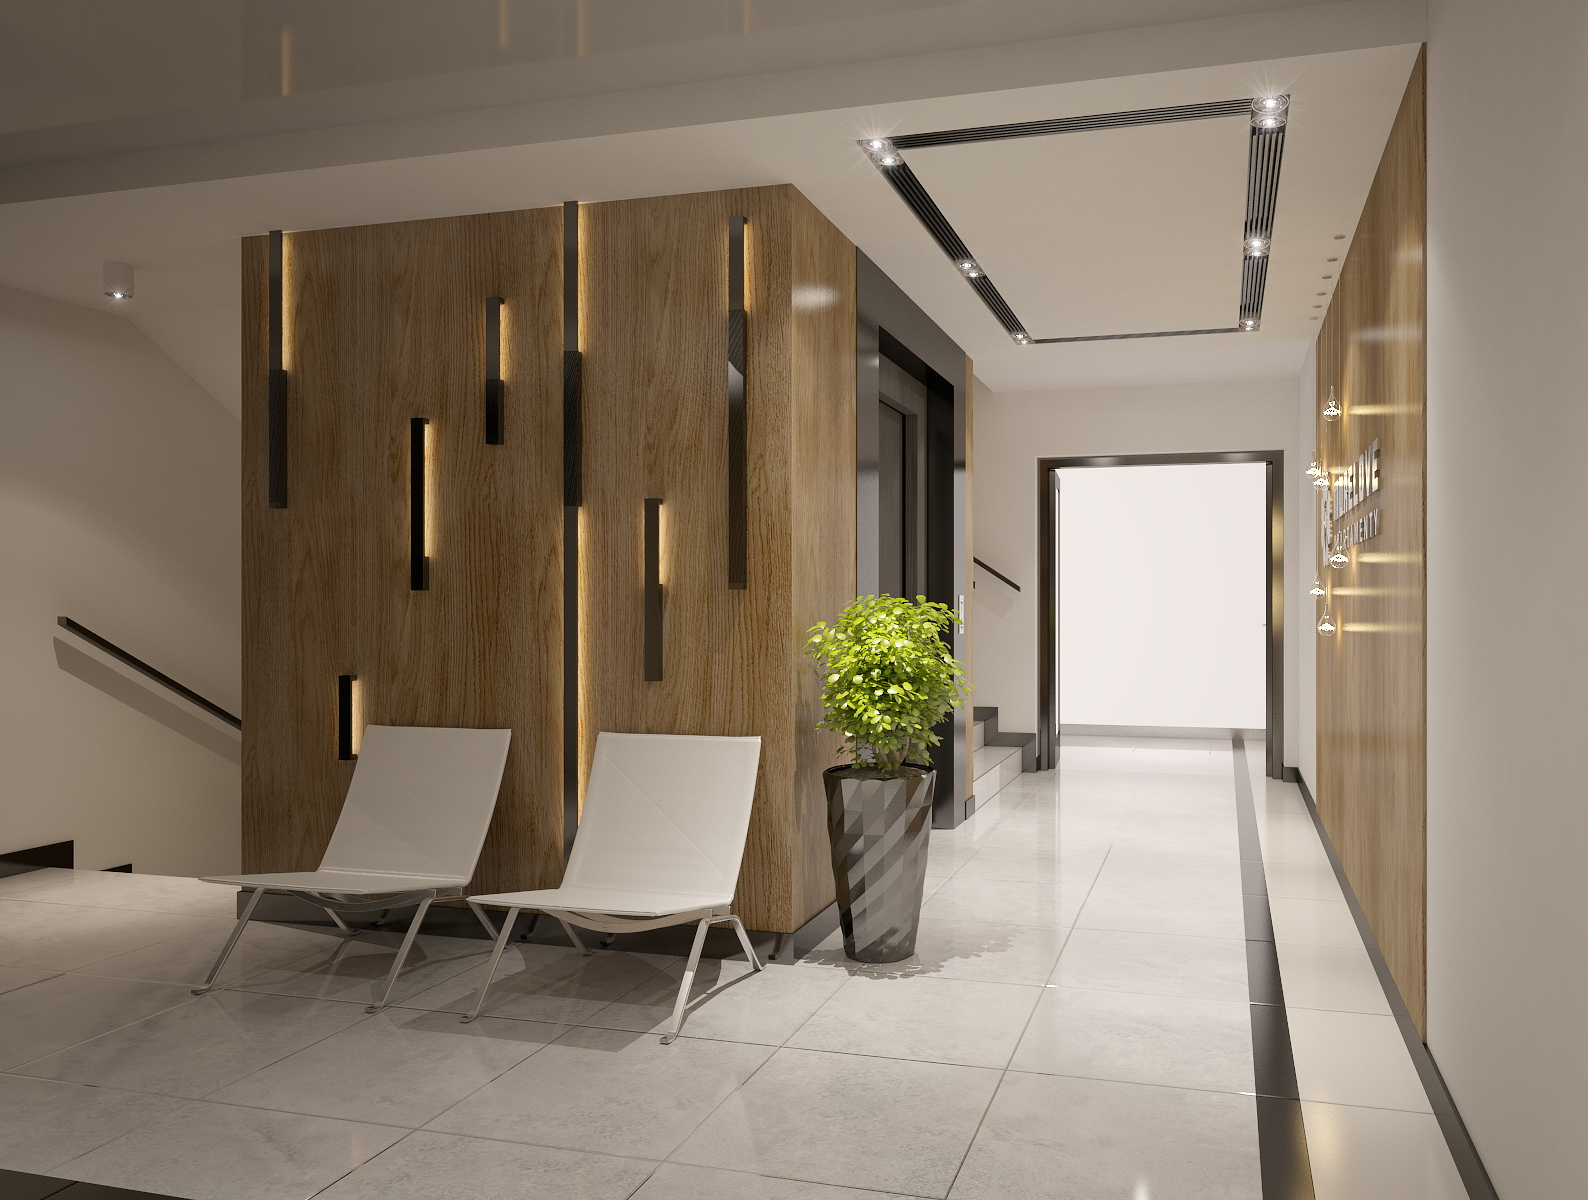 Interior Design Of Apartments Building Entrance Ha 3d Model 3ds Max Fbx C4d  Obj